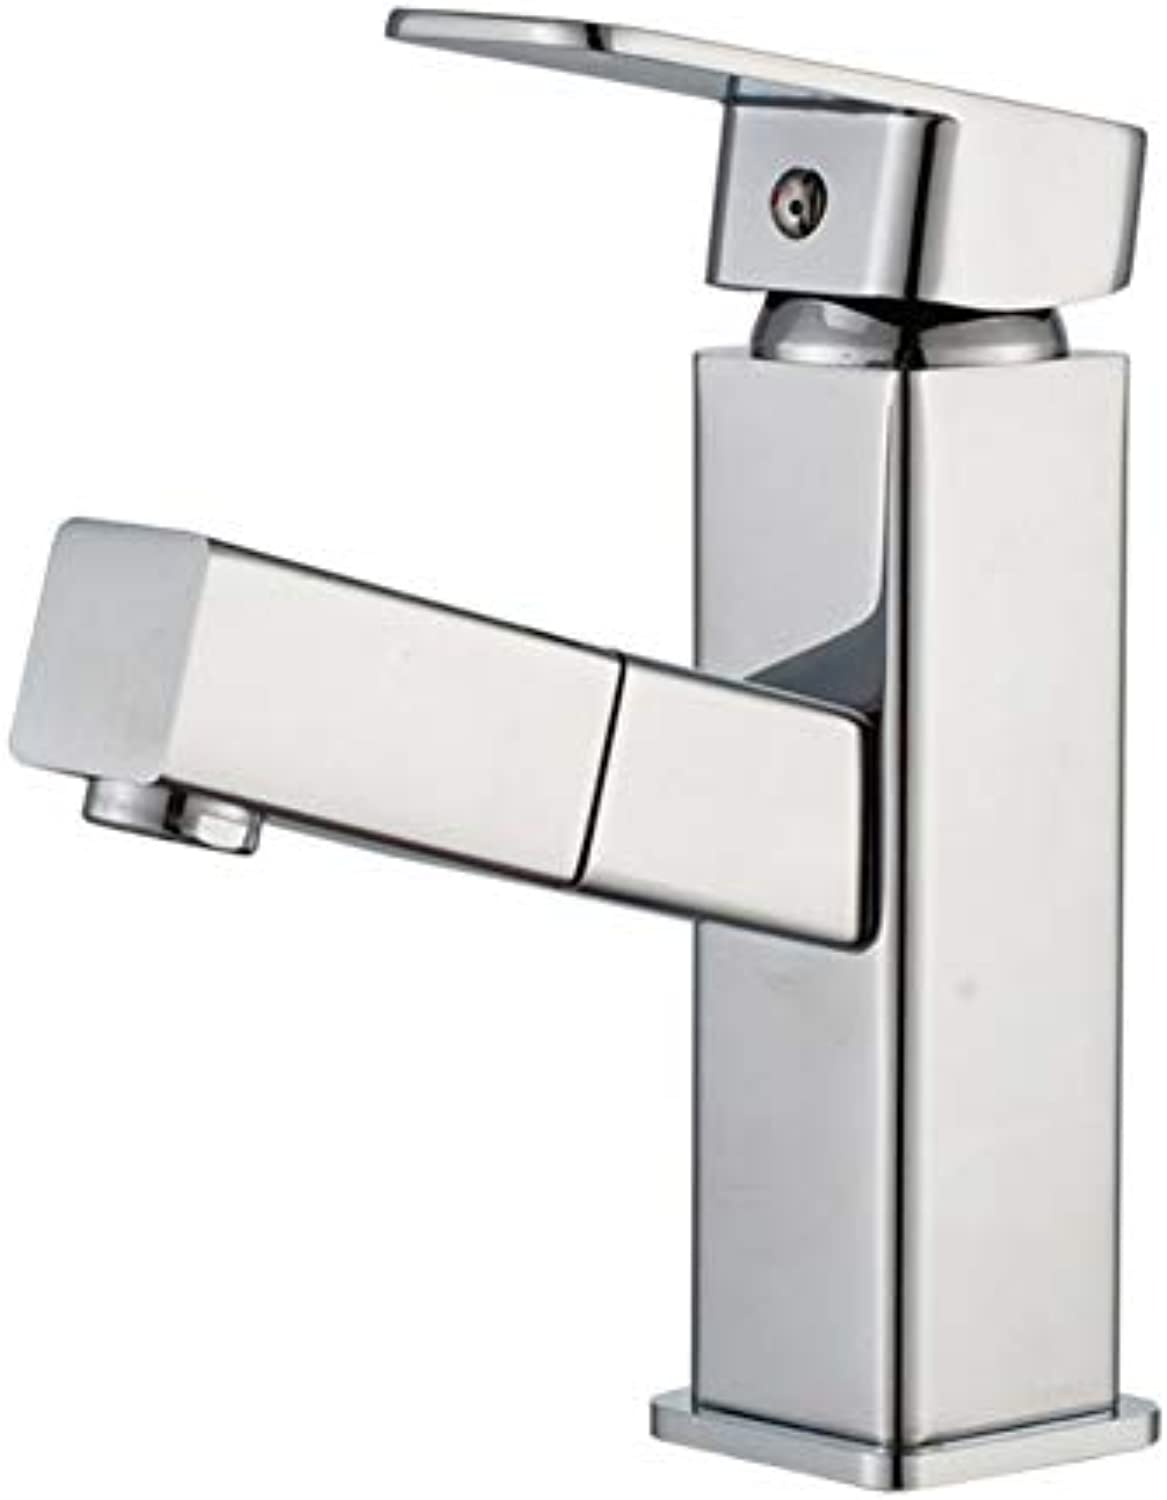 Xiujie Faucet Four-Way Pull-Proof Splash Faucet Bathroom Washbasin Household Hot and Cold Water Faucet